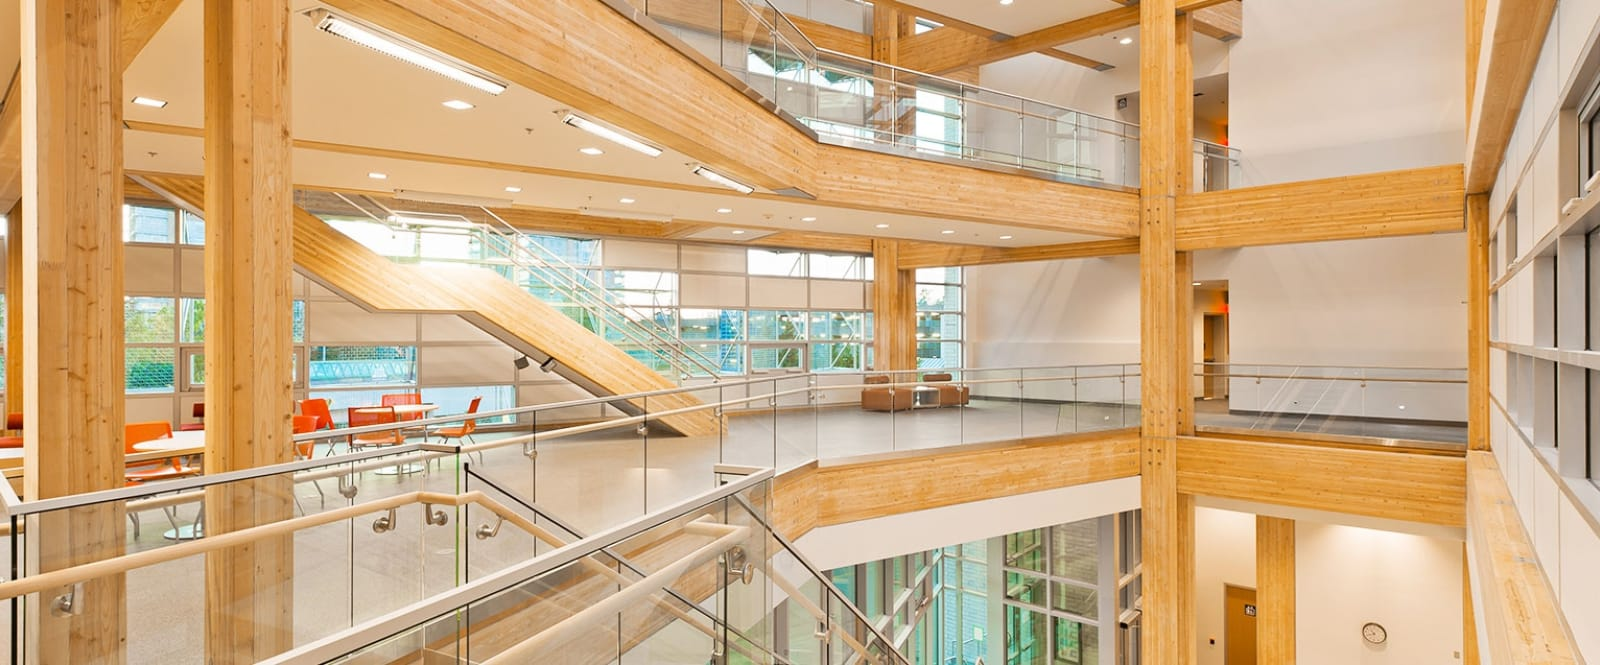 The hottest new thing in sustainable building is, uh, wood